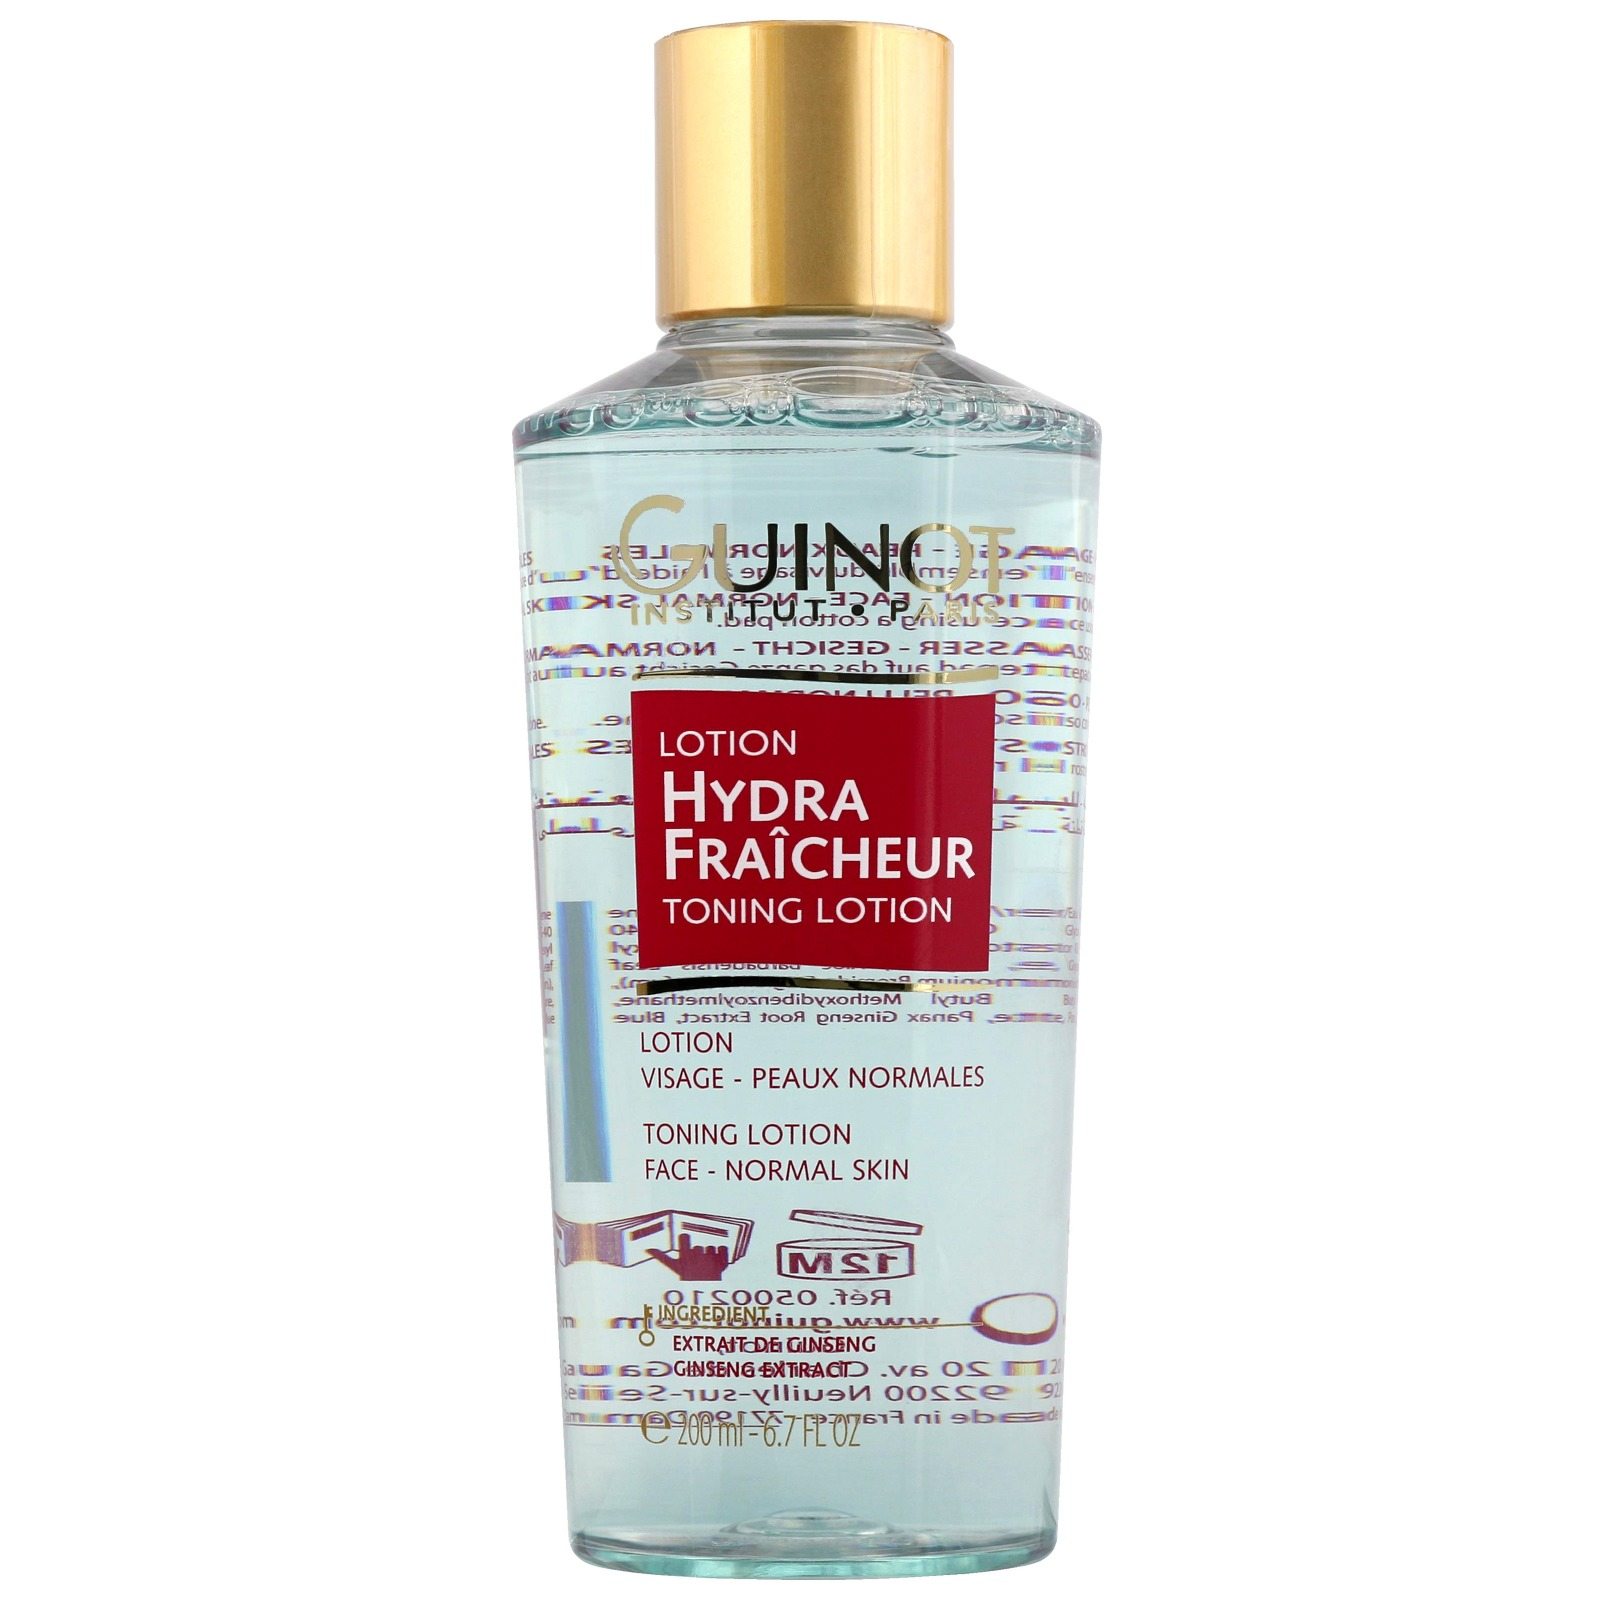 Guinot Make-Up Removal / Cleansing Lotion Hydra Fraicheur Refreshing Toning Lotion 200ml / 6.7 fl.oz.